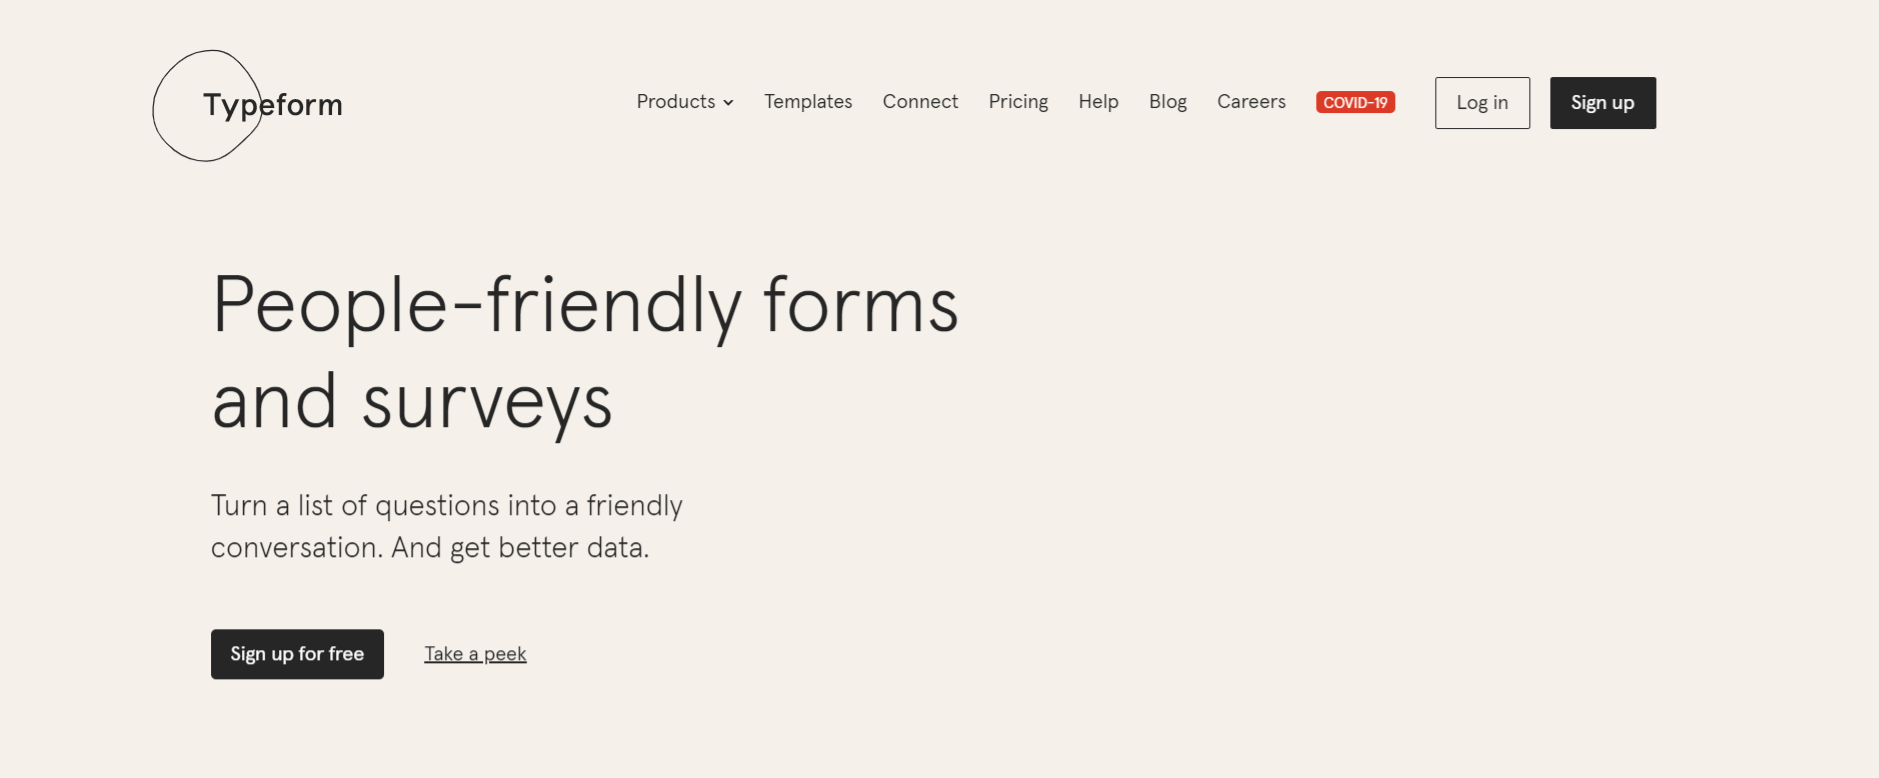 Typeform: Business marketing tool